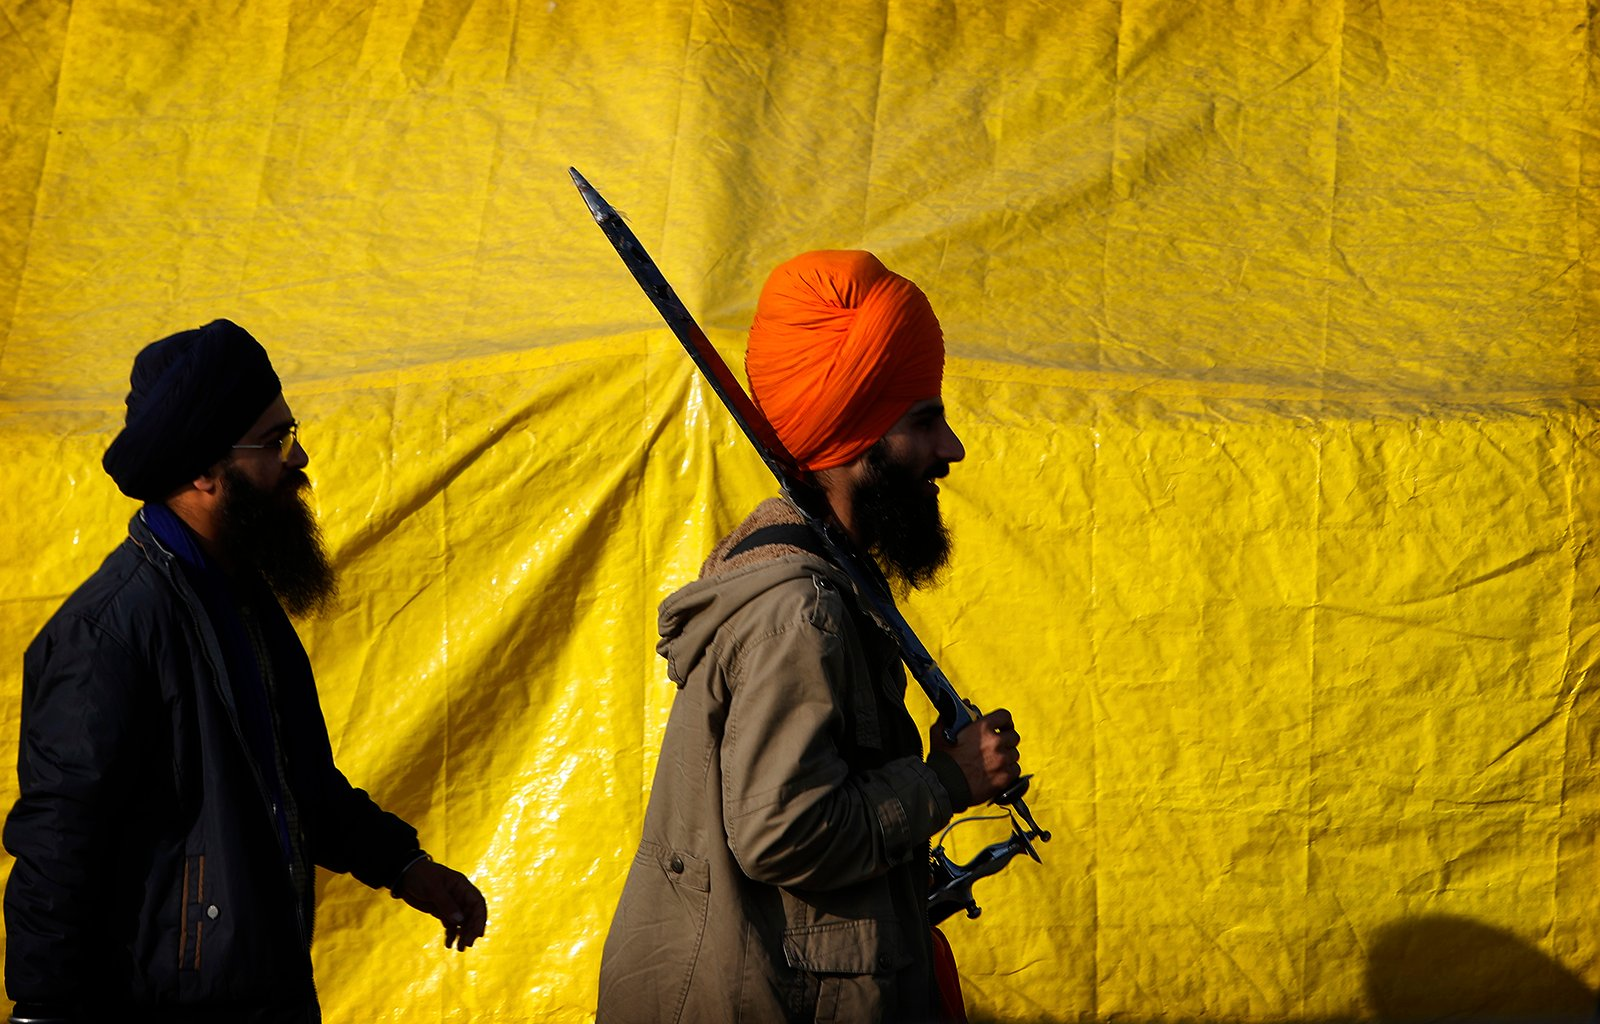 A Sikh farmer carries a sword while returning to his makeshift tent at one of the three main protest sites, at Delhi-Uttar Pradesh border, on the outskirts of New Delhi, India, Friday, Feb. 5, 2021. India's agriculture minister on Friday defended the new agriculture reform laws in Parliament, dampening hopes of any quick settlement with tens of thousands of protesting farmers demanding their repeal by blocking three highways connecting New Delhi to northern India for over two months now. (AP Photo/Manish Swarup)